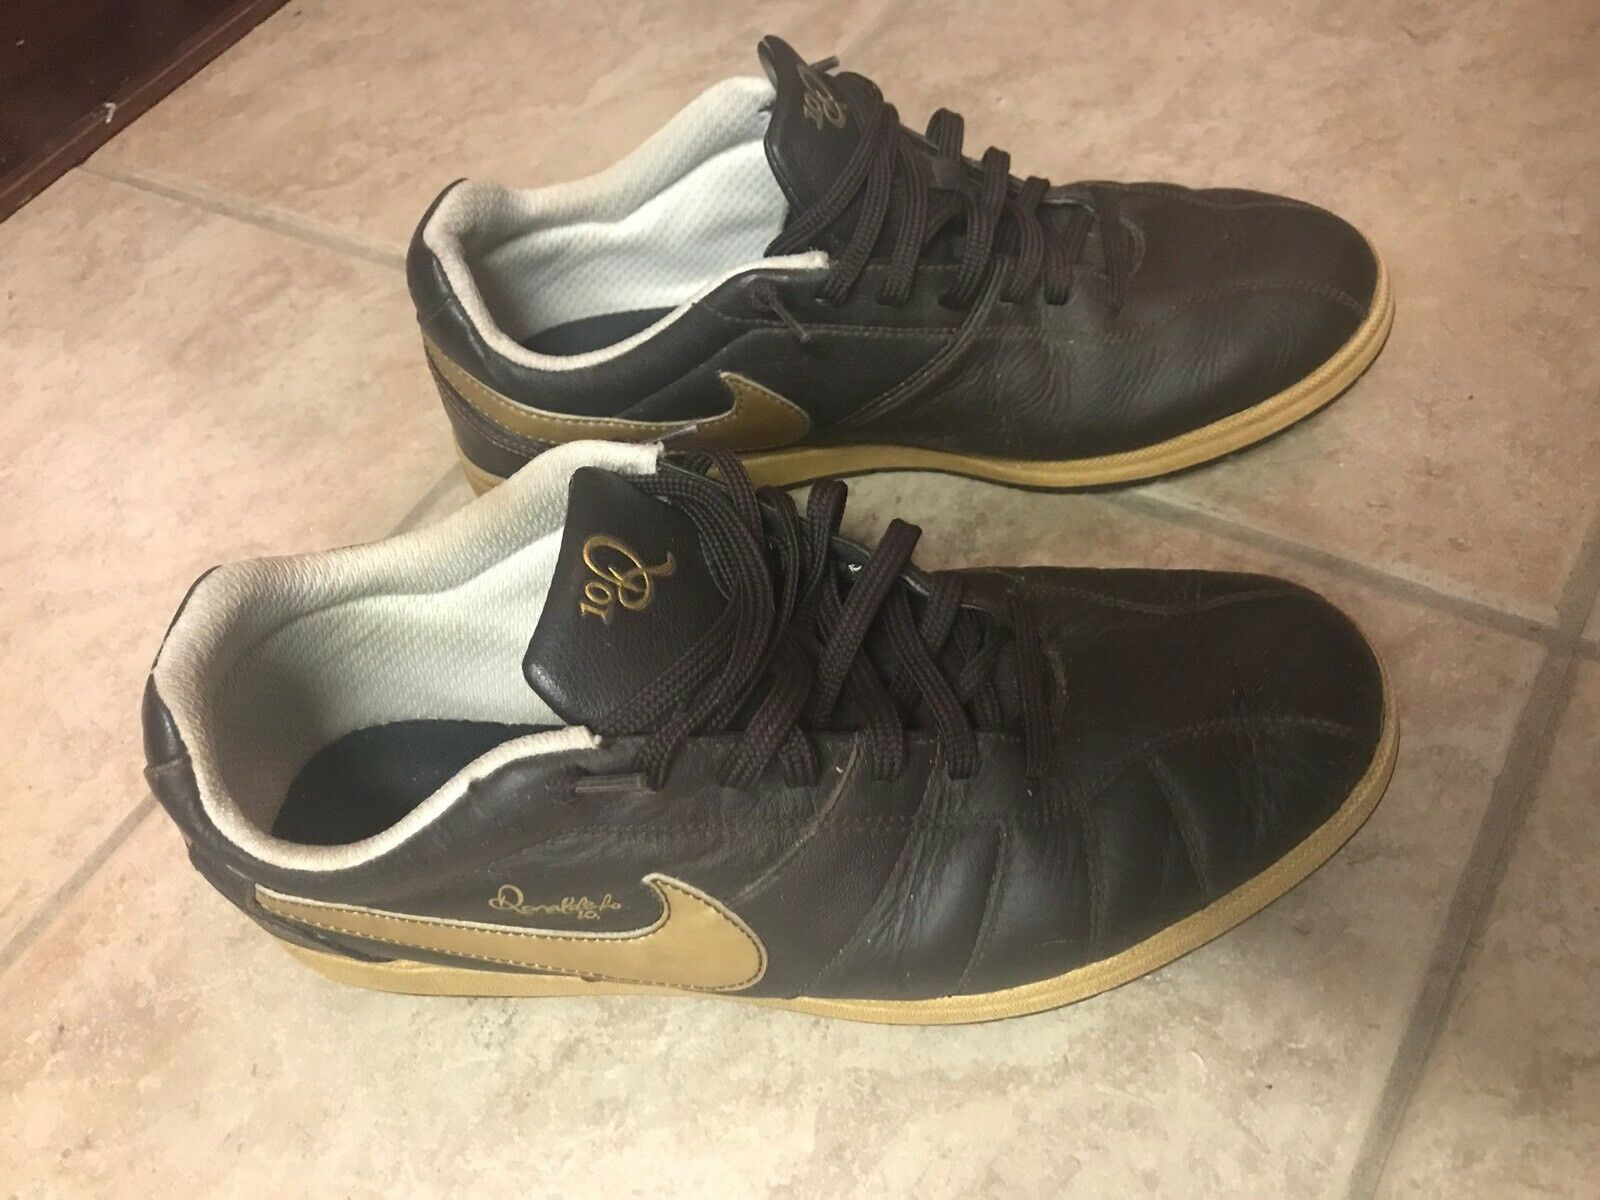 RARE NIKE AIR RONALDINHO RIVAL SHOES Sz. MEN'S US 10 315261-271 (Good Condition)